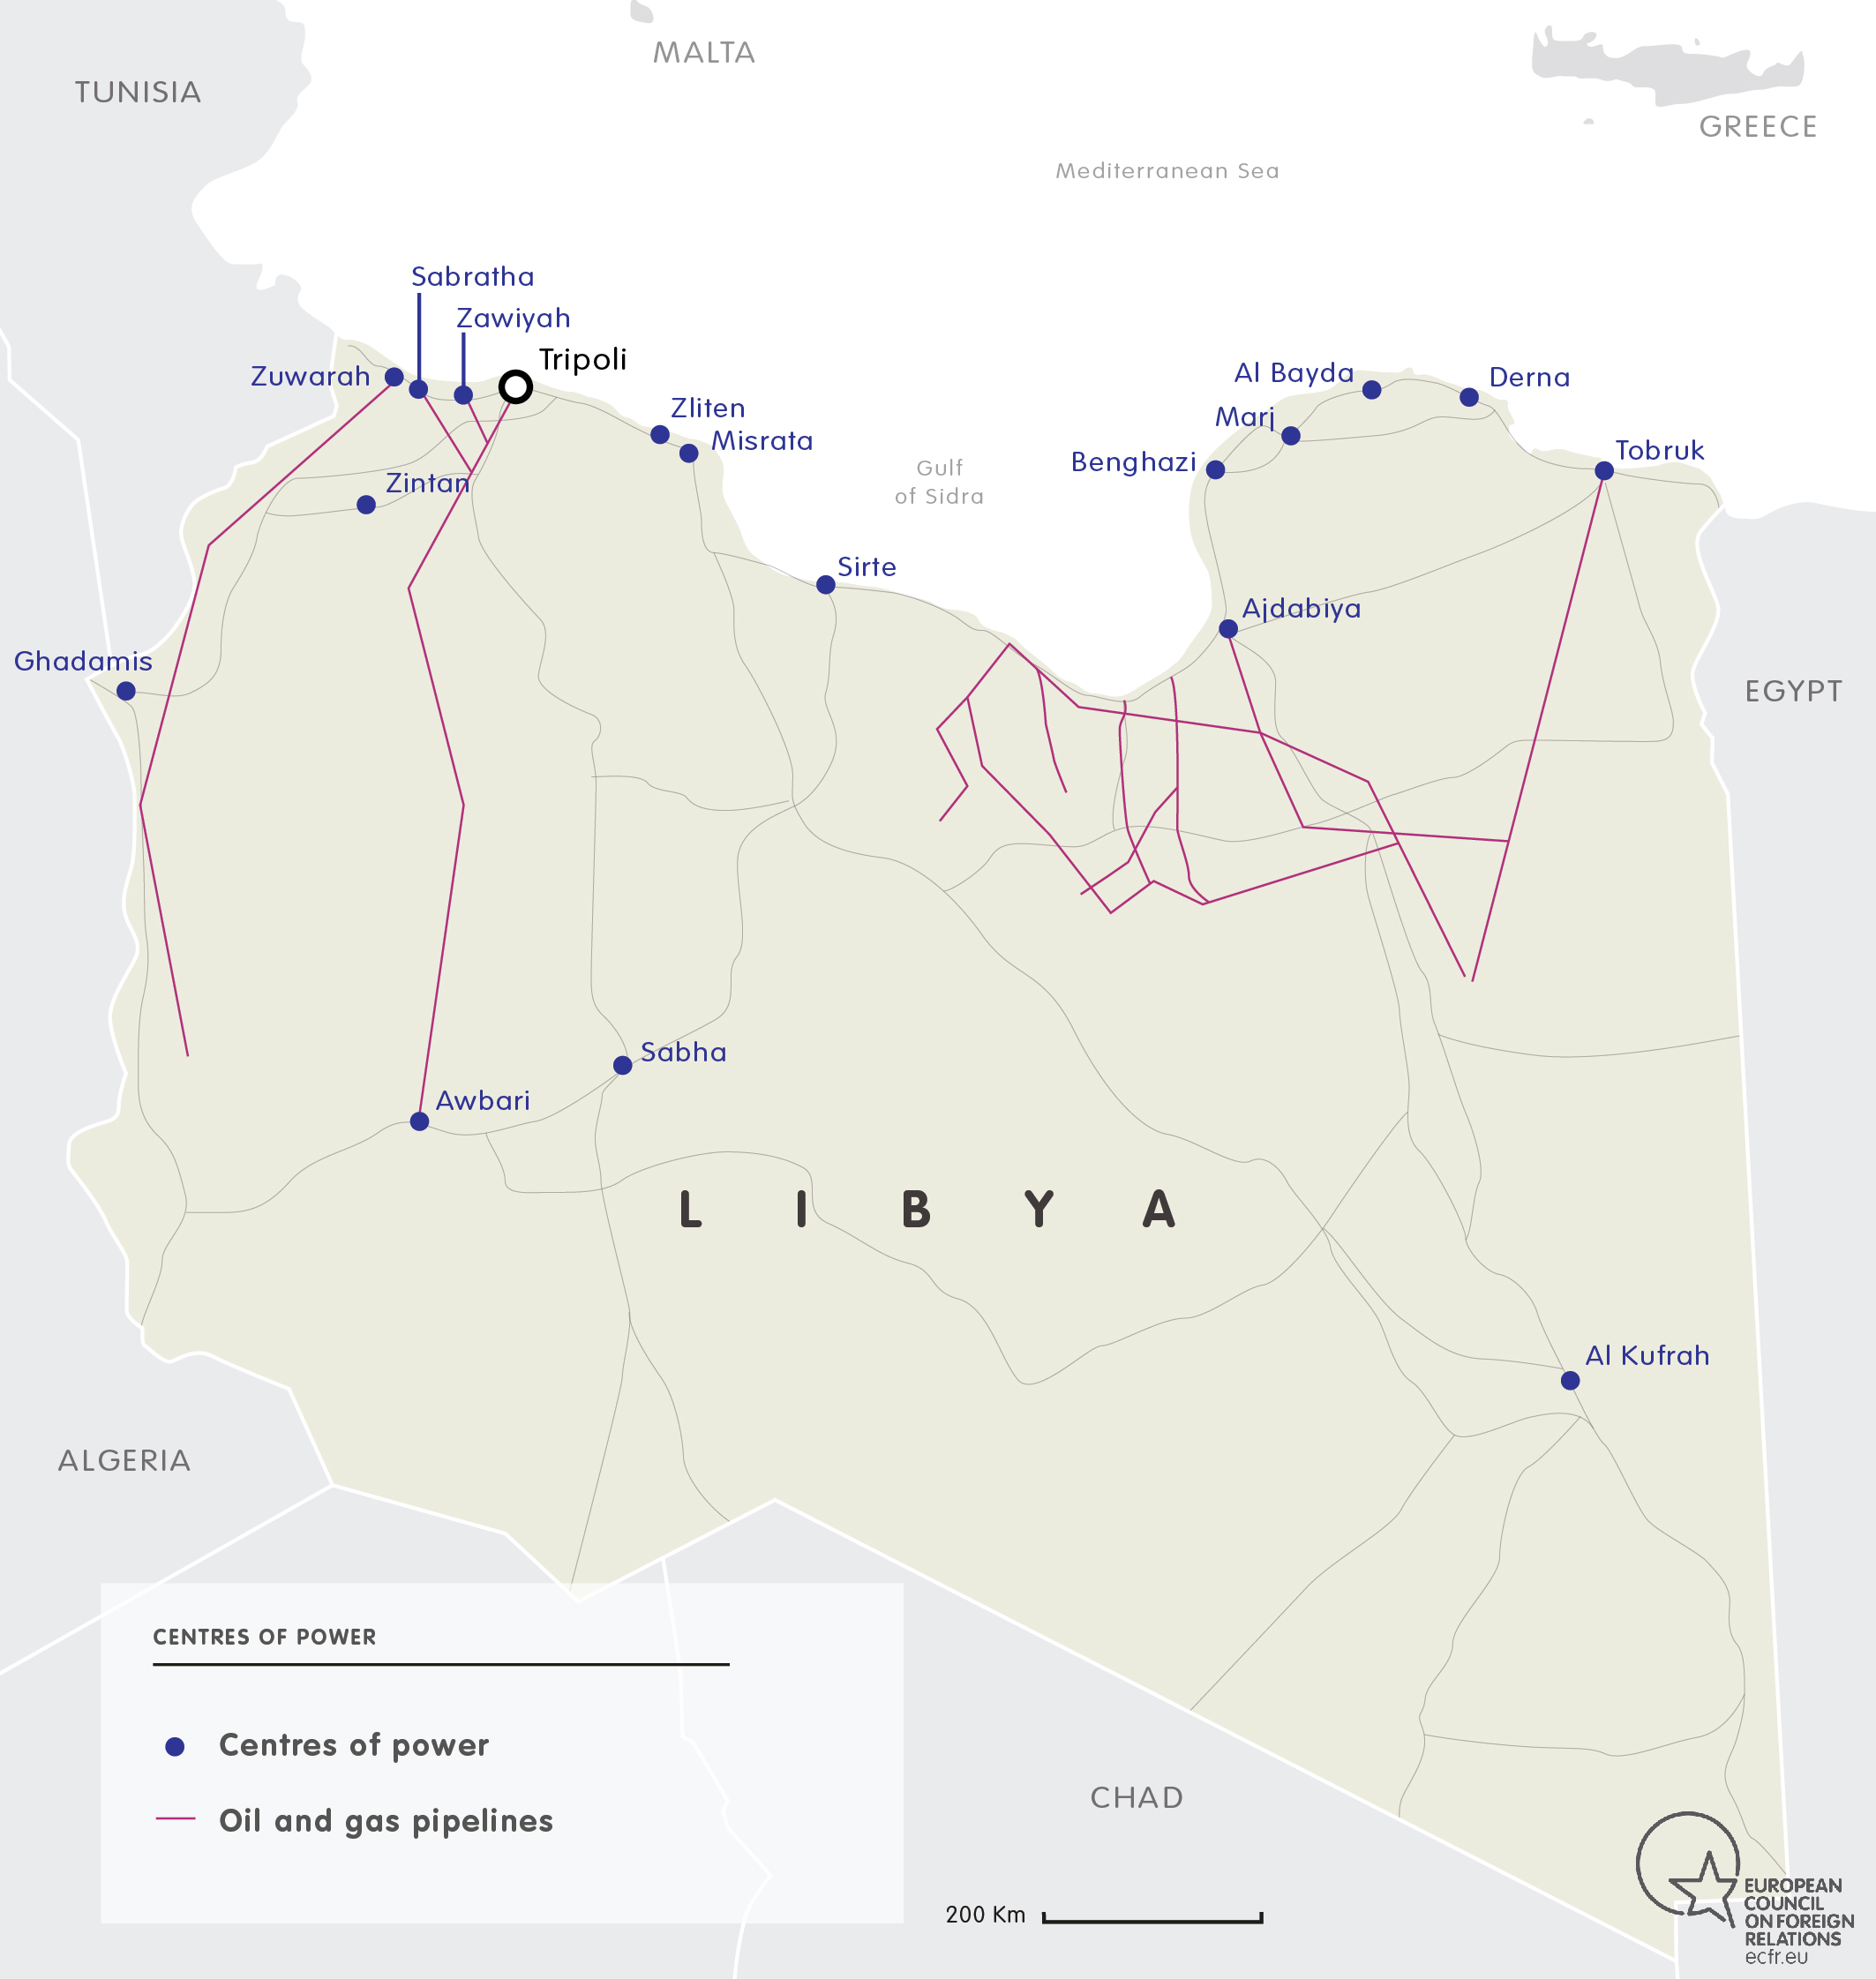 MAP OF OIL & GAS CENTRES OF POWER IN LIBYA